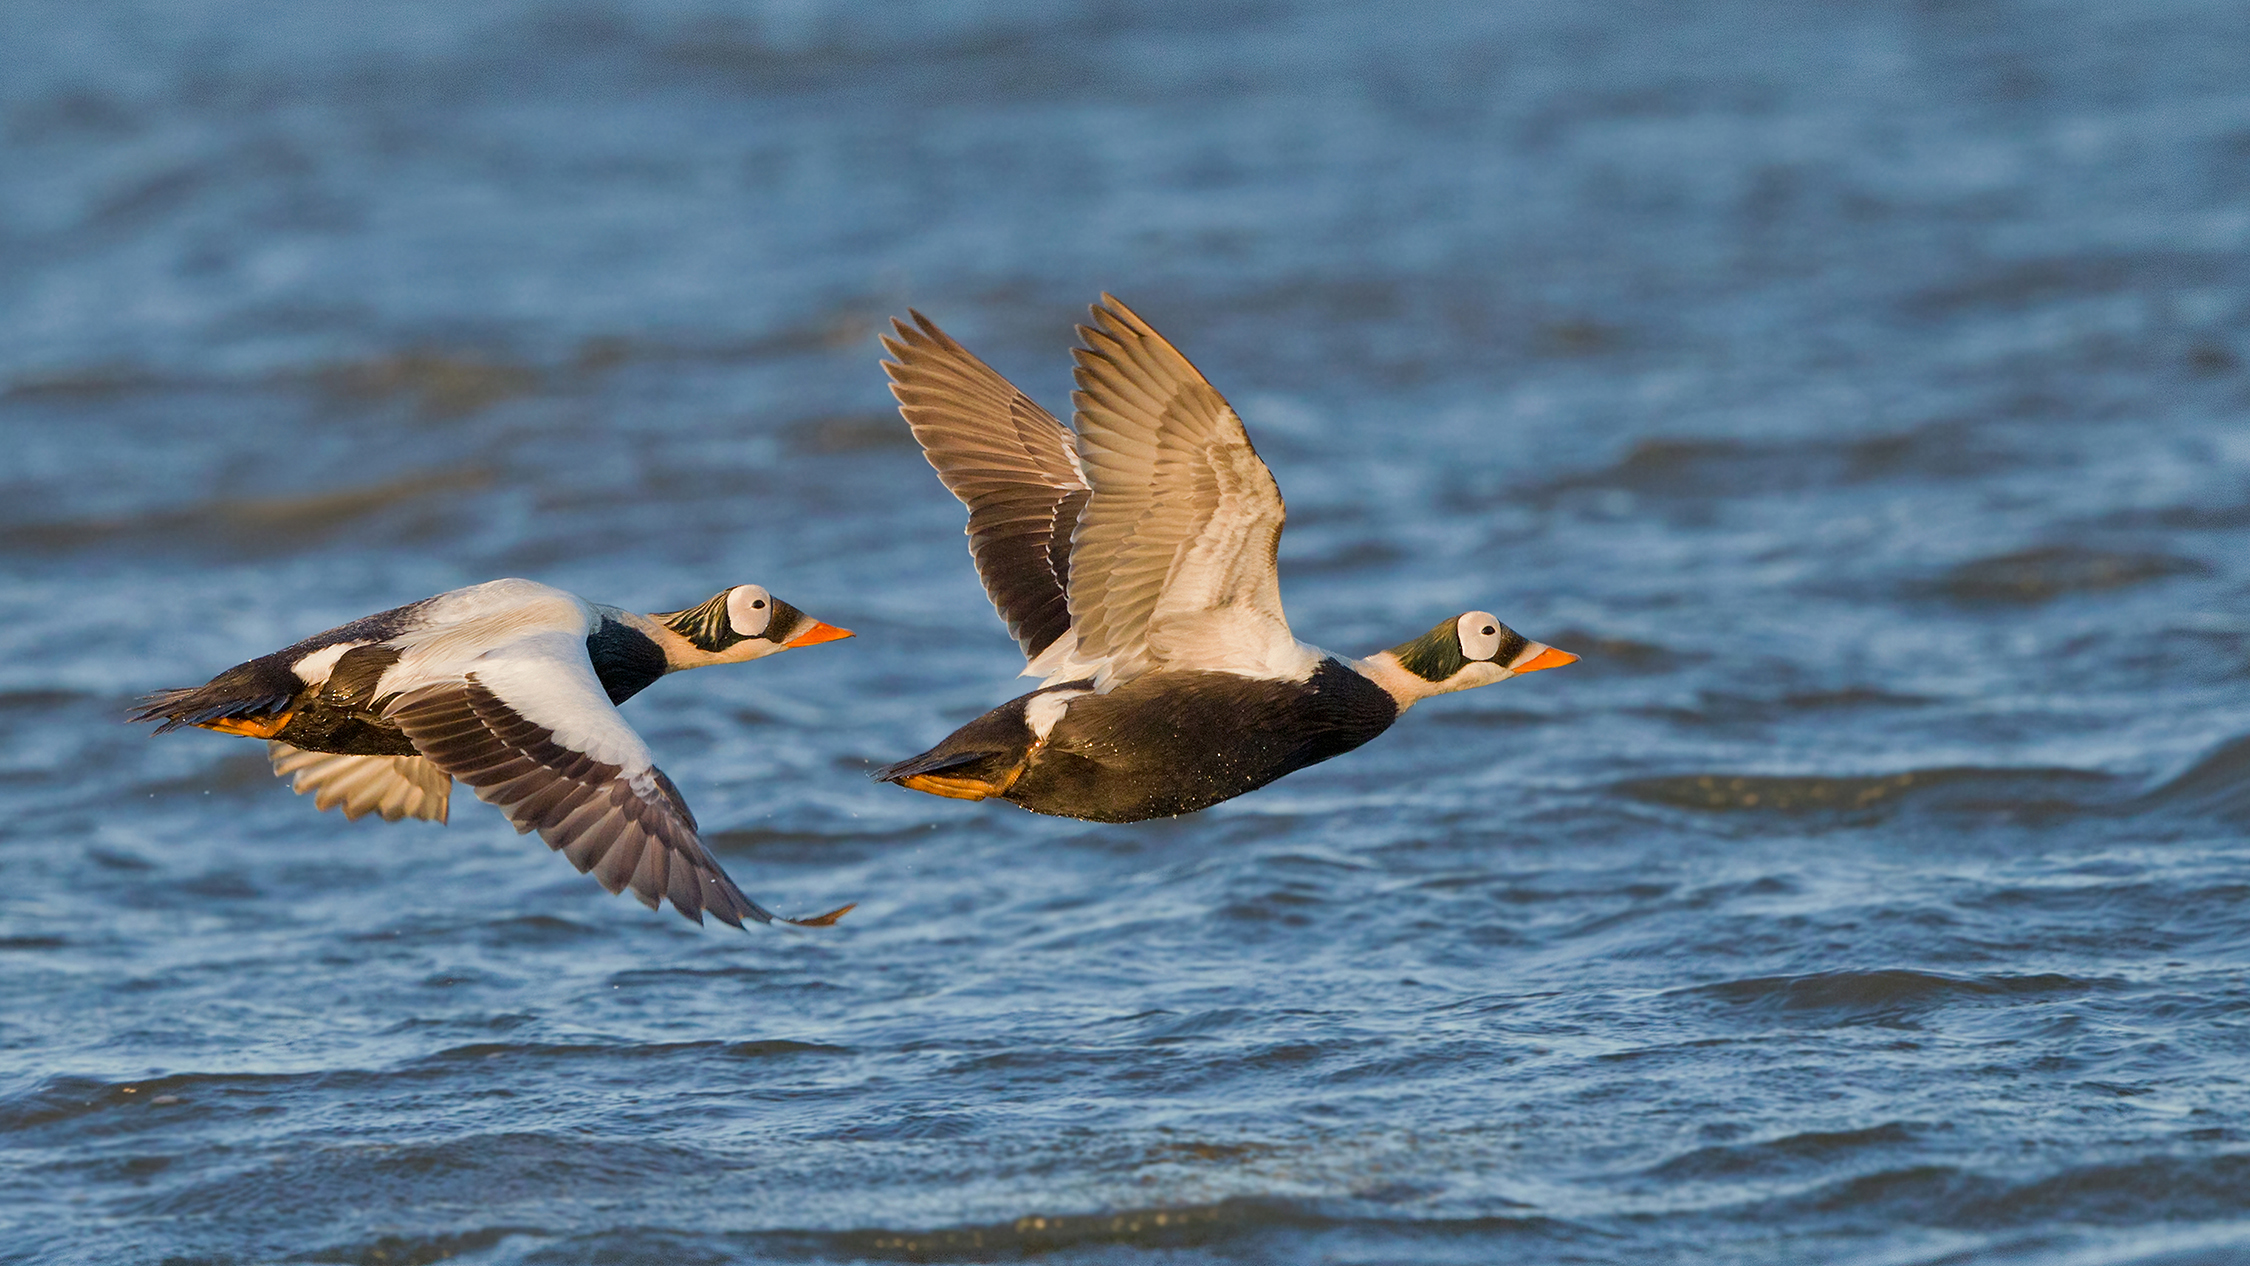 A pair of spectacled eider drakes fly over the coastal waters of Barrow, Alaska. Millions of seabirds migrate across long stretches of the Arctic Ocean each year, using marine habitat to feed, rest, and breed.